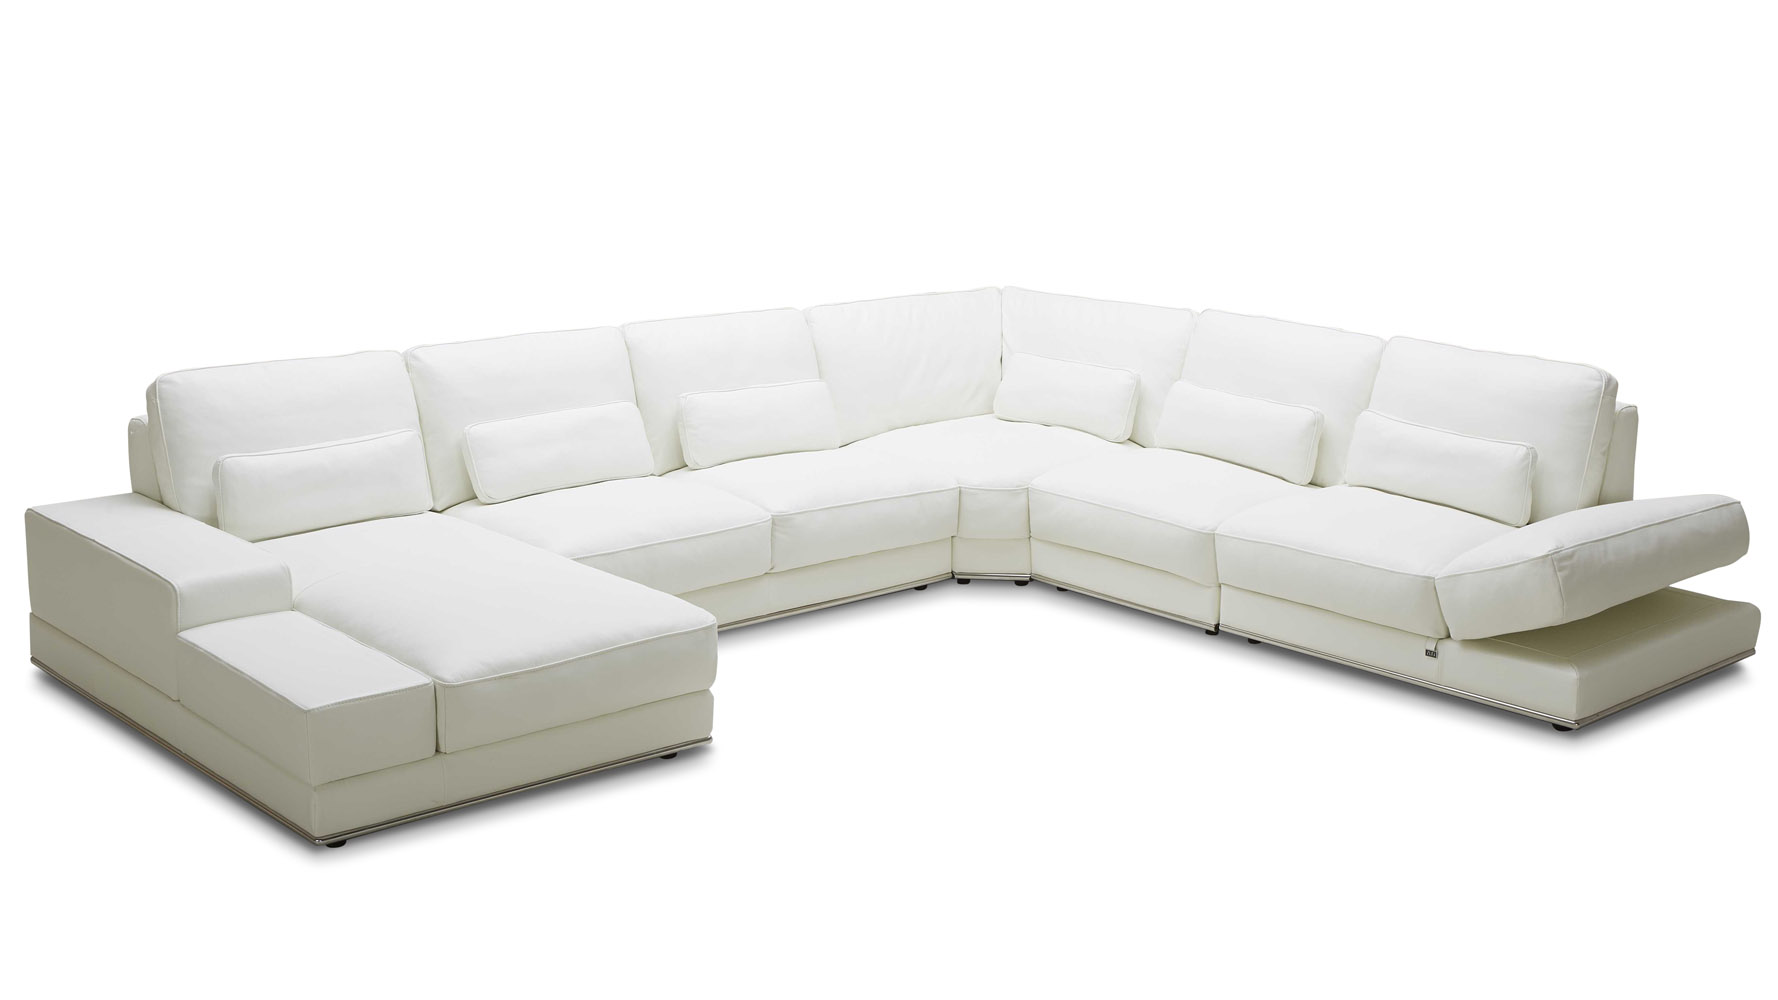 3 piece leather sectional sofa with chaise flexible cover modern white nolan zuri